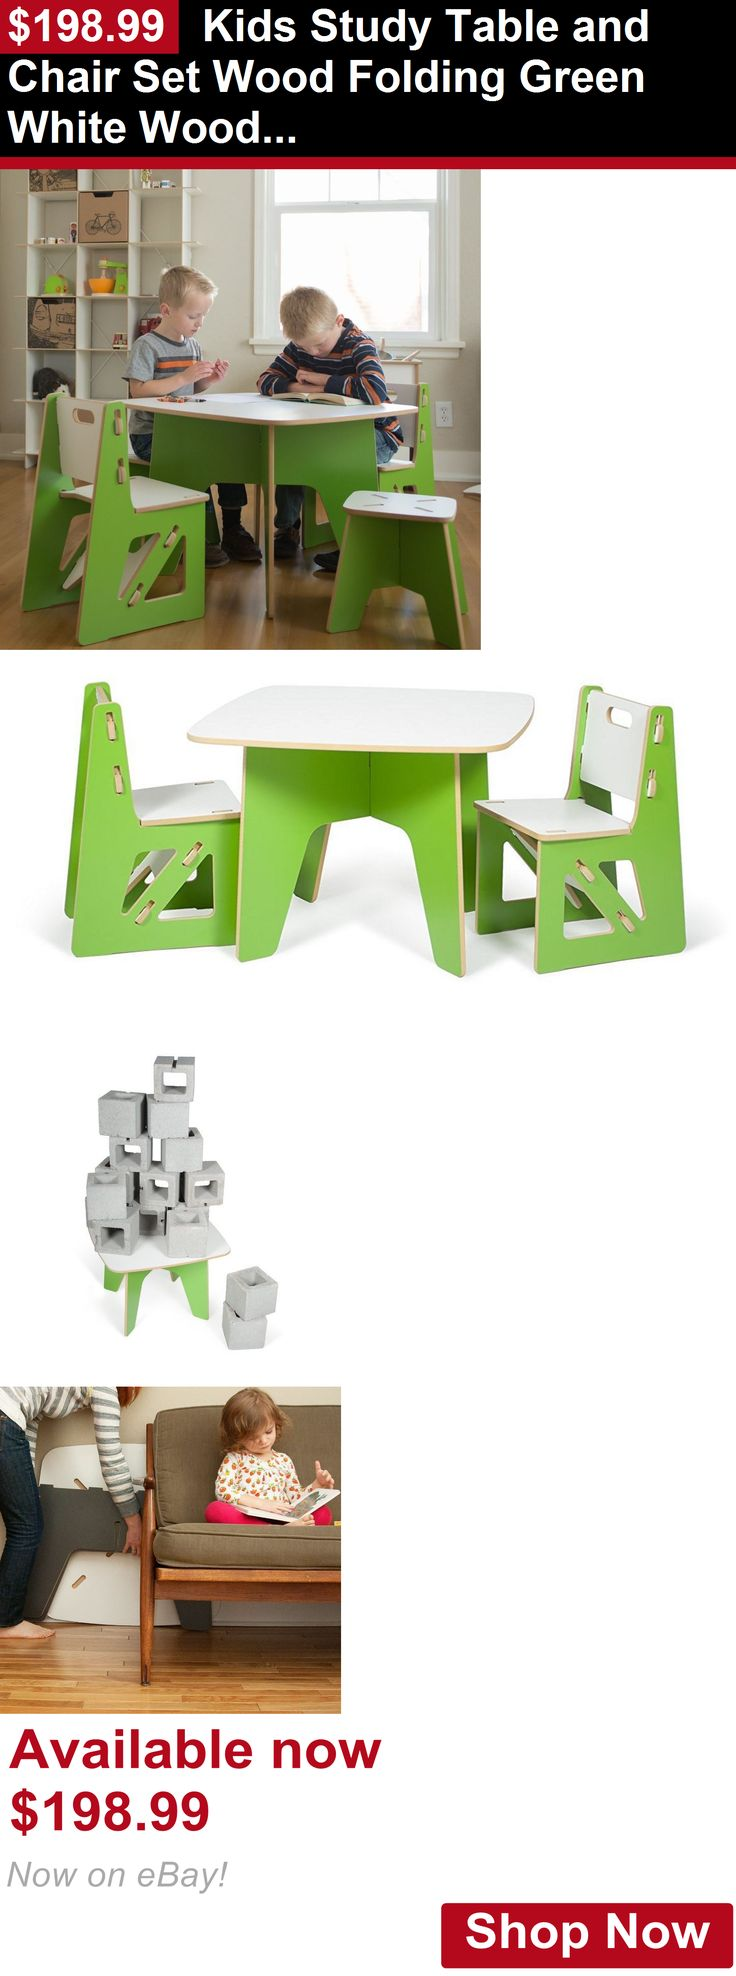 Nursery Furniture Sets: Kids Study Table And Chair Set Wood Folding Green White Wooden Indoor BUY IT NOW ONLY: $198.99